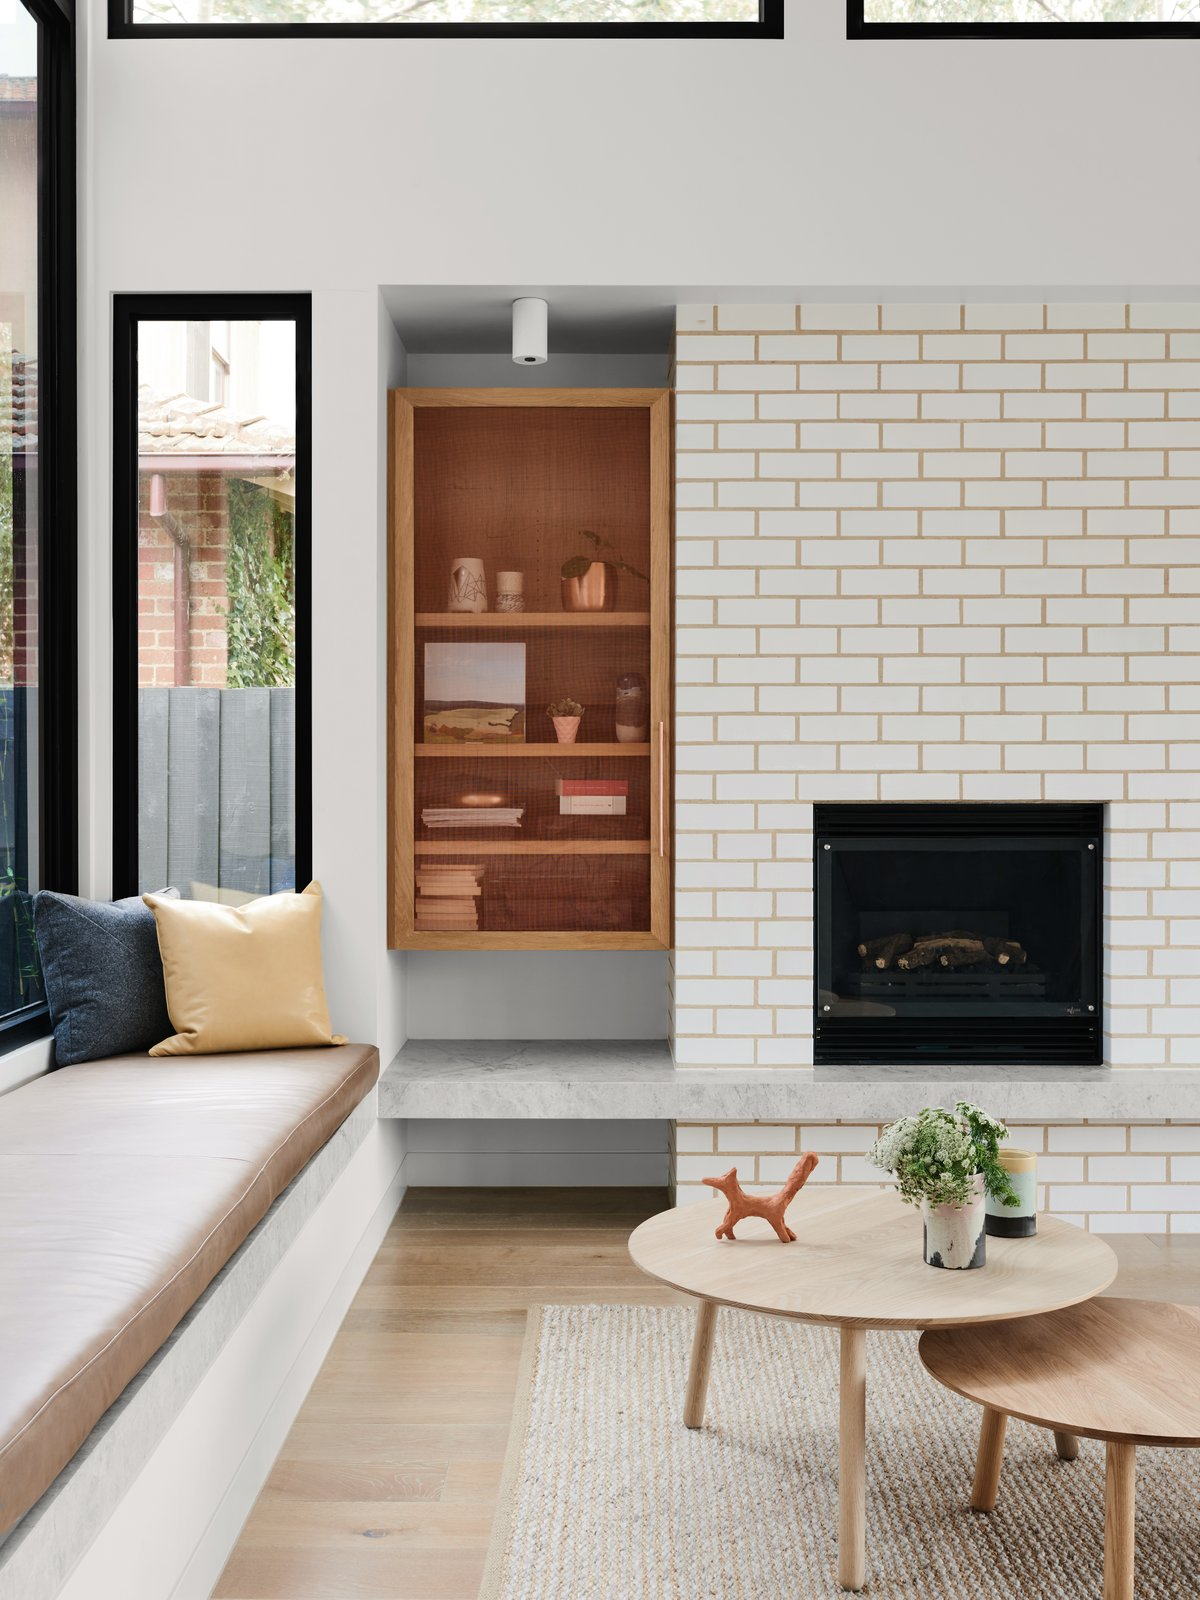 Living Room, Bench, Coffee Tables, Shelves, Standard Layout Fireplace, Rug Floor, Light Hardwood Floor, and Ceiling Lighting  Photo 3 of 10 in A Run-Down Melbourne Bungalow's Makeover Embraces Light and Family Life